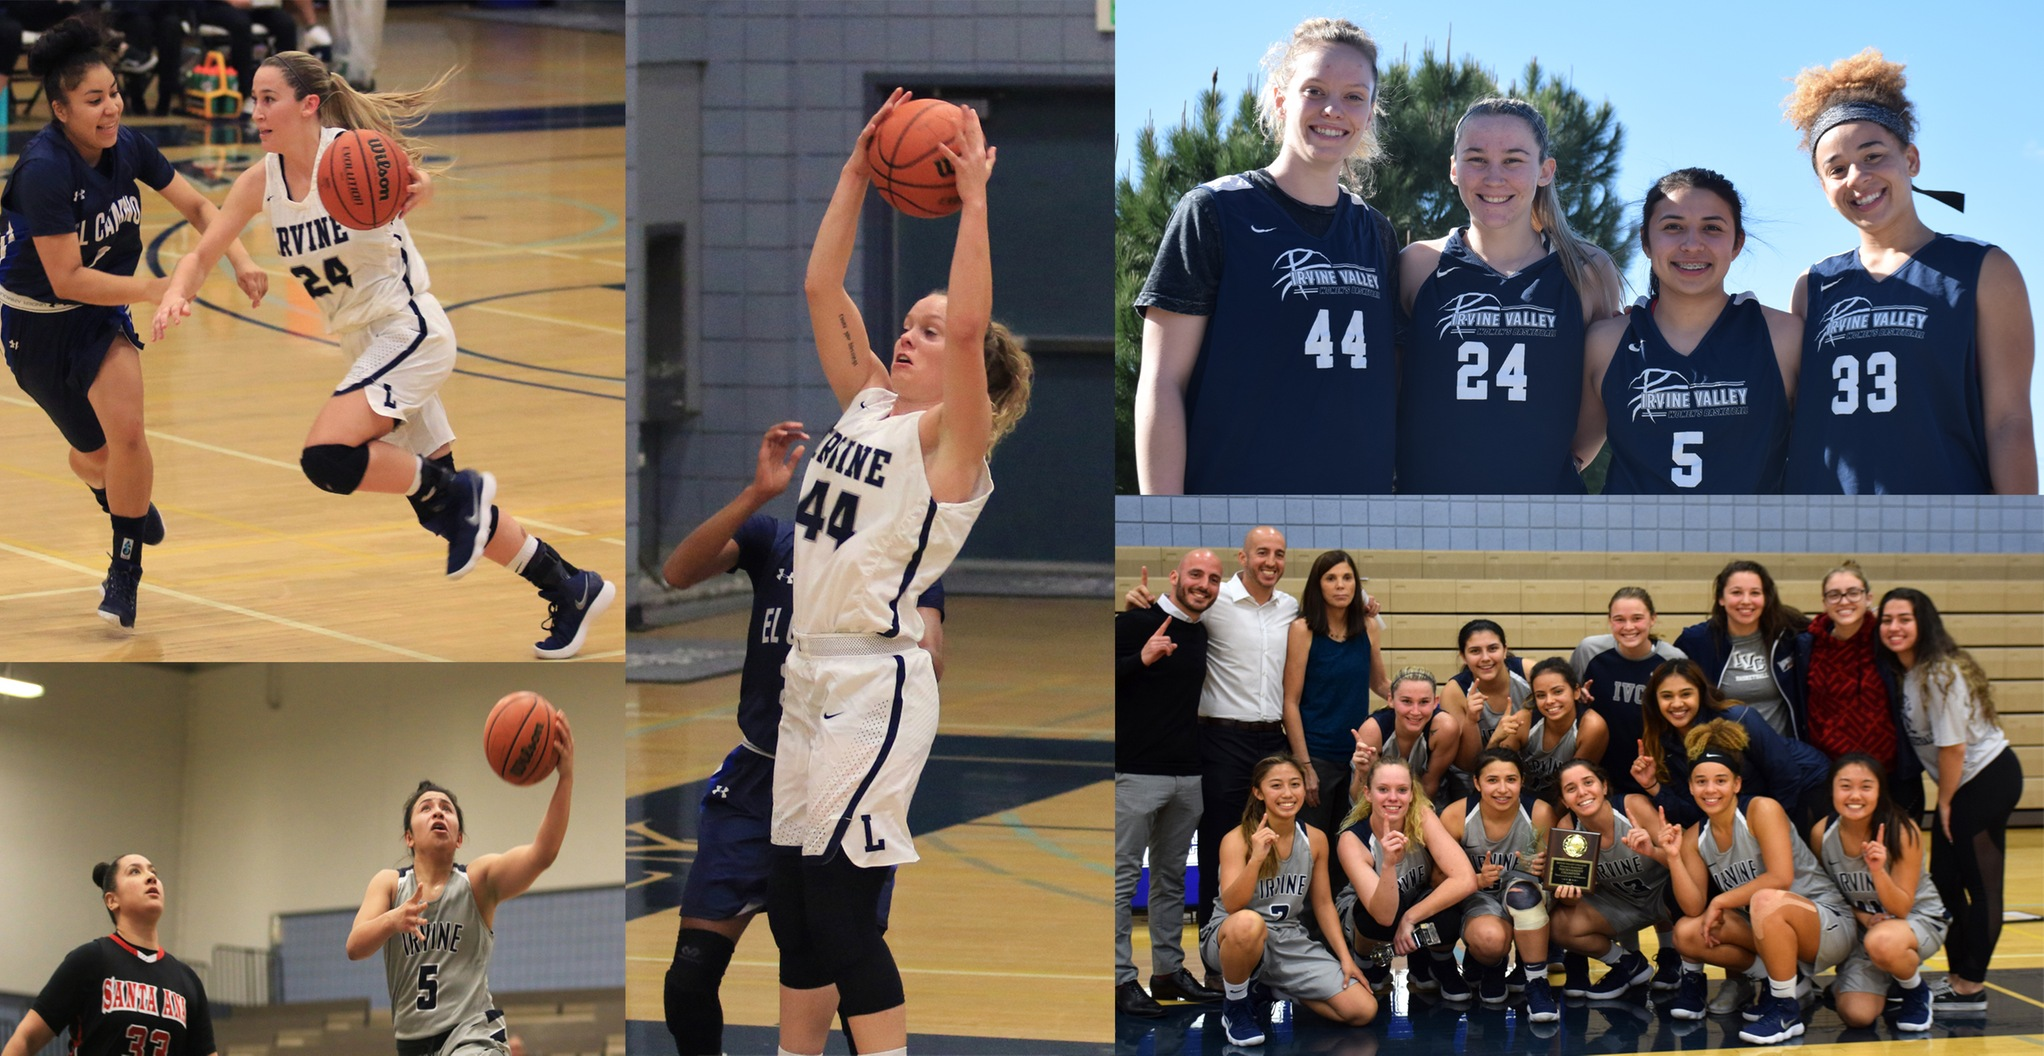 2018-19 Irvine Valley women's basketball schedule released